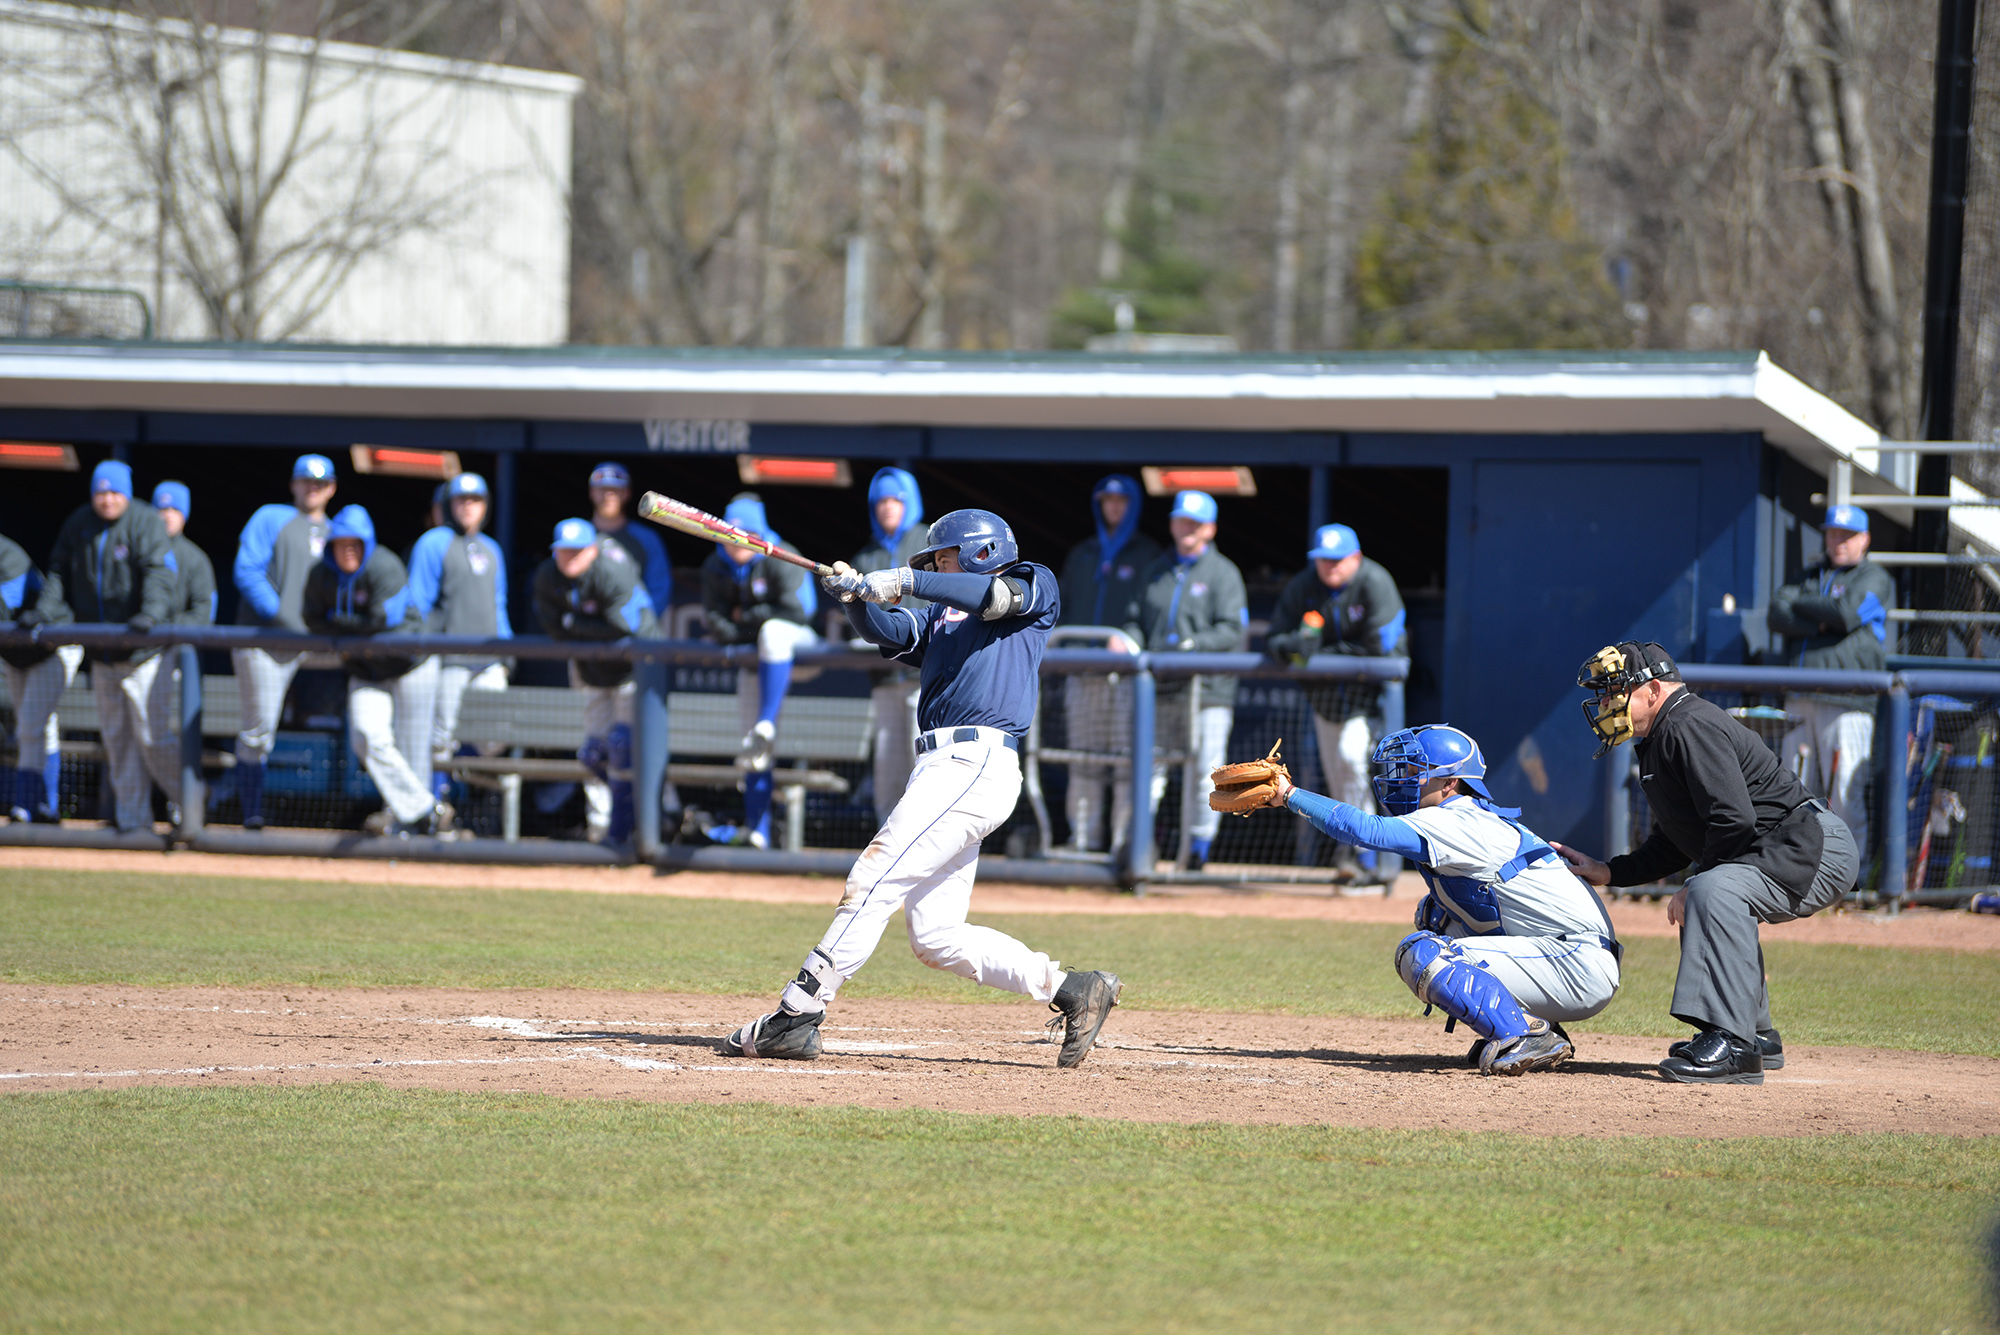 UConn defeats Memphis 10-7 at J.O. Christian Field on Saturday, April 8, 2017. The huskies swept the series following a win over memphis on Sunday. (Amar Batra/ The Daily Campus)